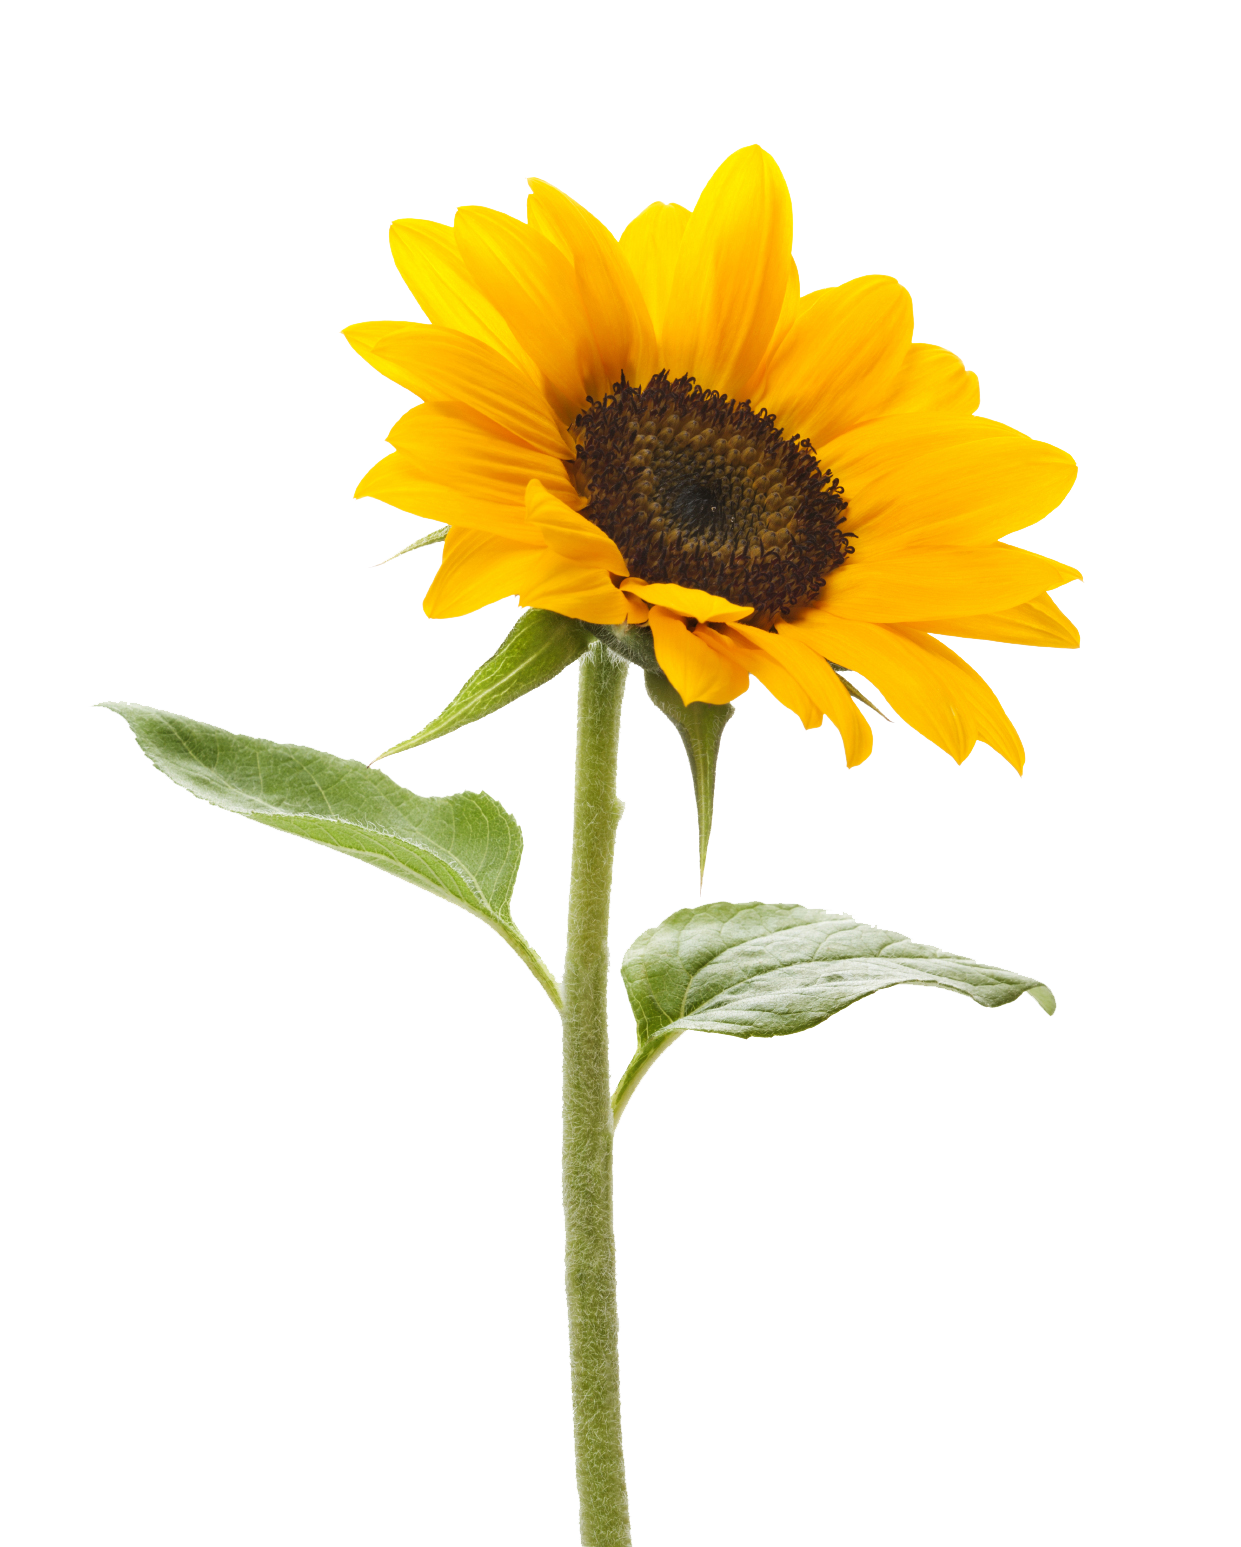 Sunflower Transparent Background PNG Image